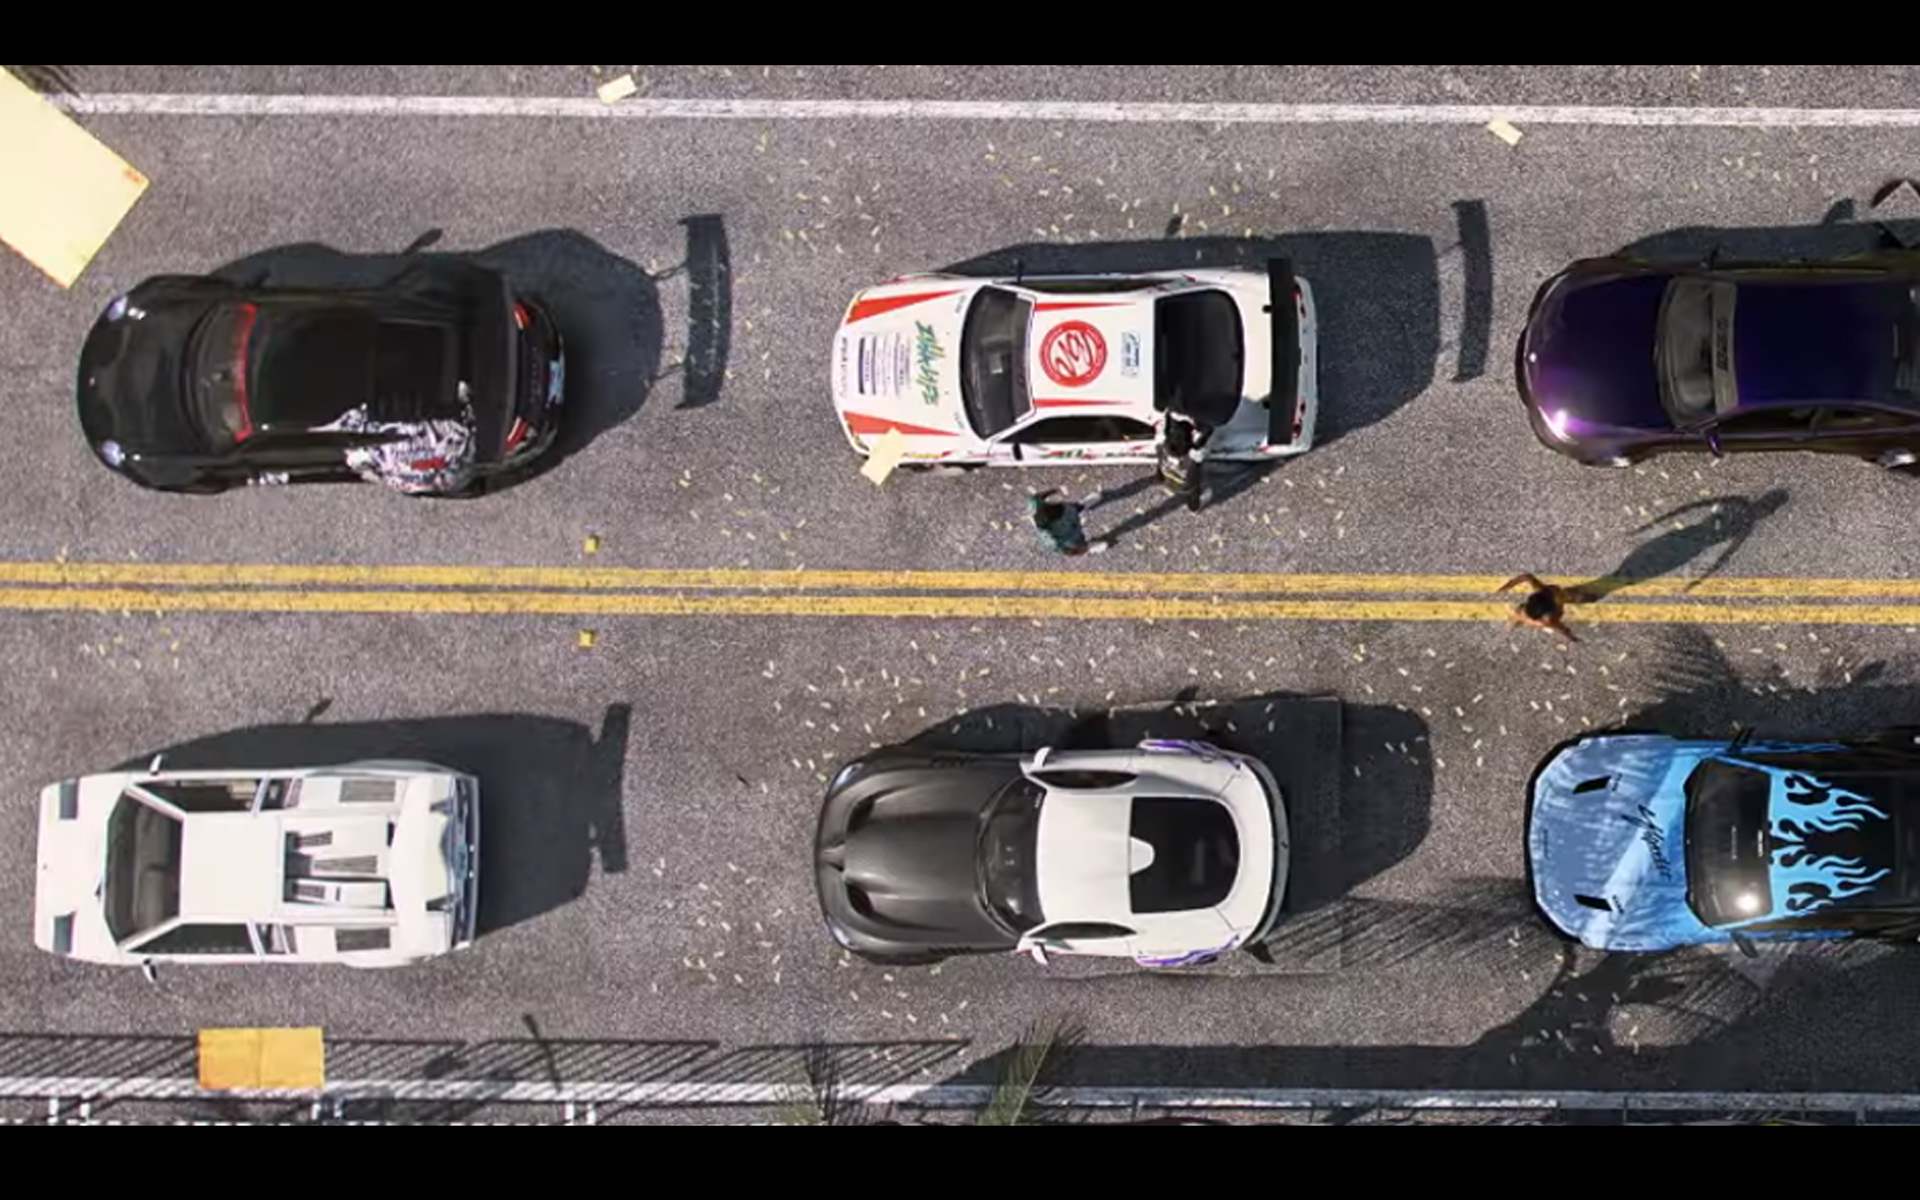 NFS-Heat-2019-screen-trailer-top-view-grid-start-zoom